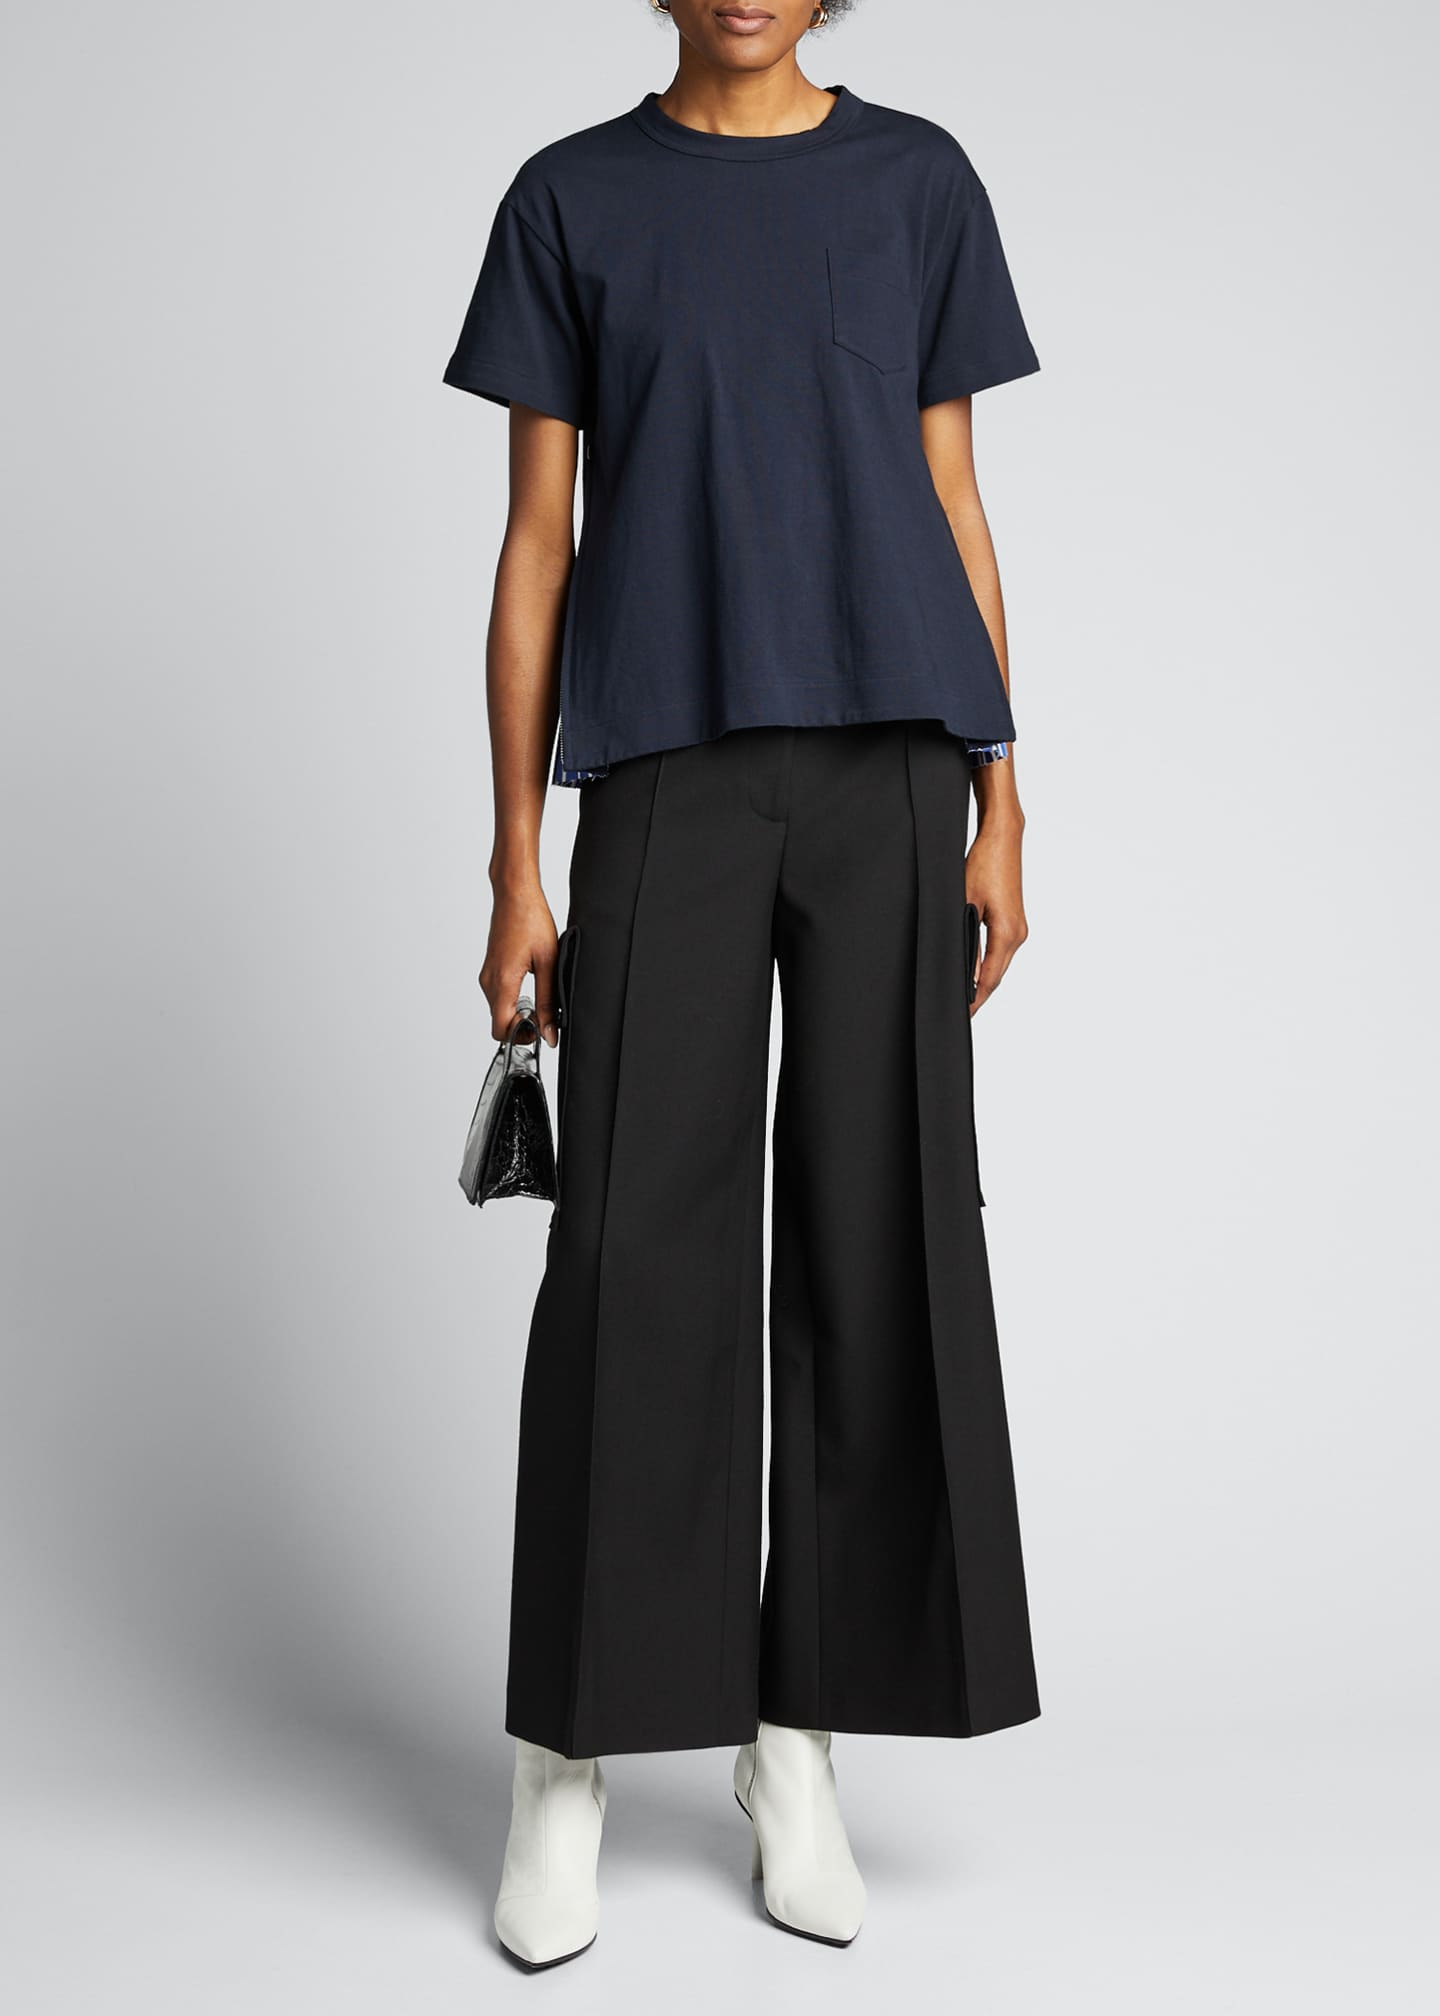 SACAI Tee with Striped Pleated Sides